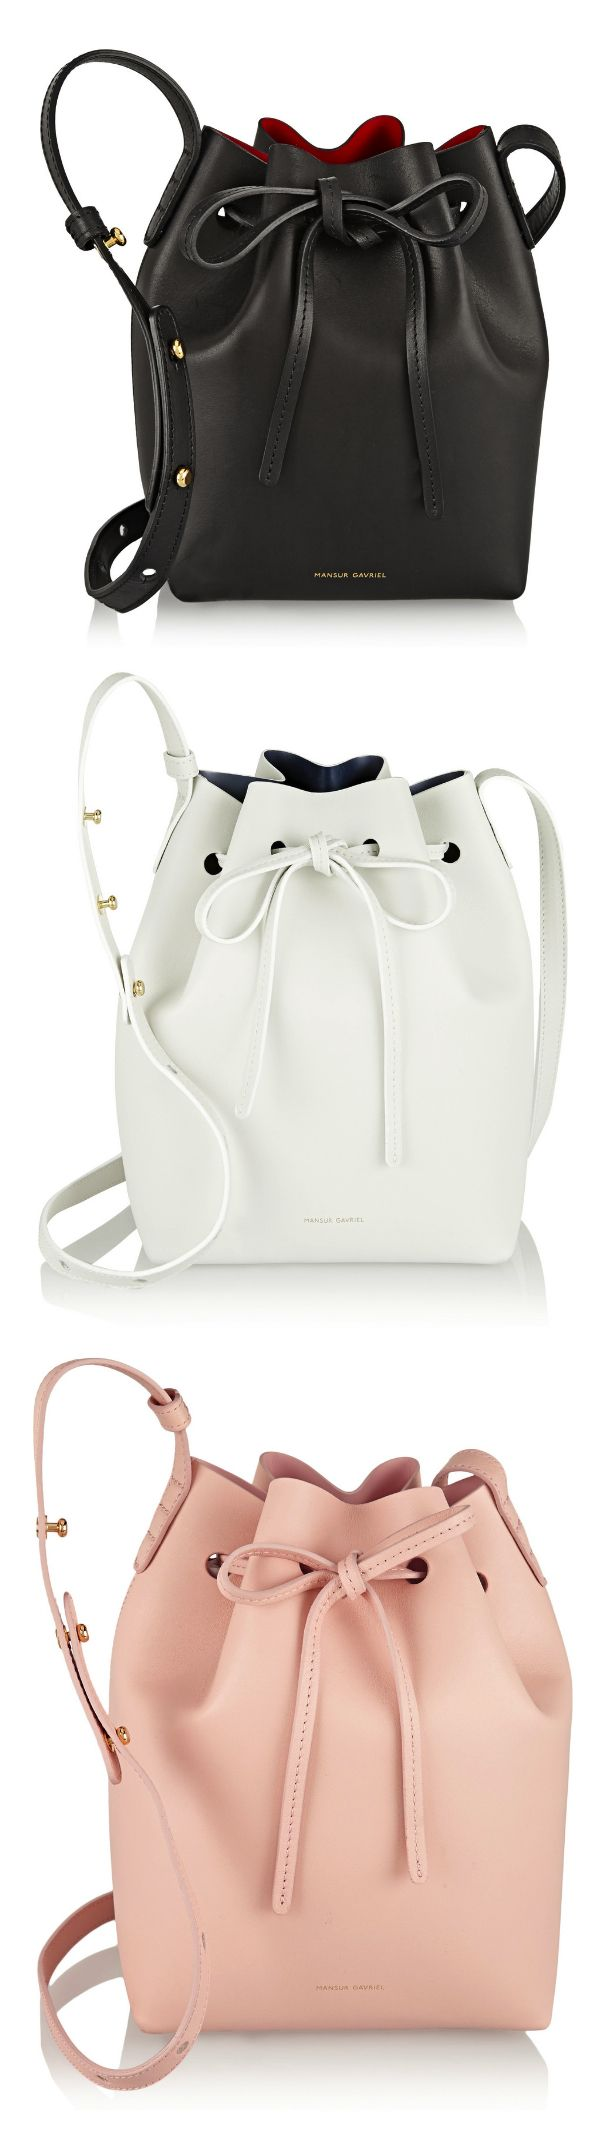 Mansur Gavriel Bucket Bag in large or mini. Really love the Rosa calf coated, Camello calf coated, and Creme canvas $485-$695